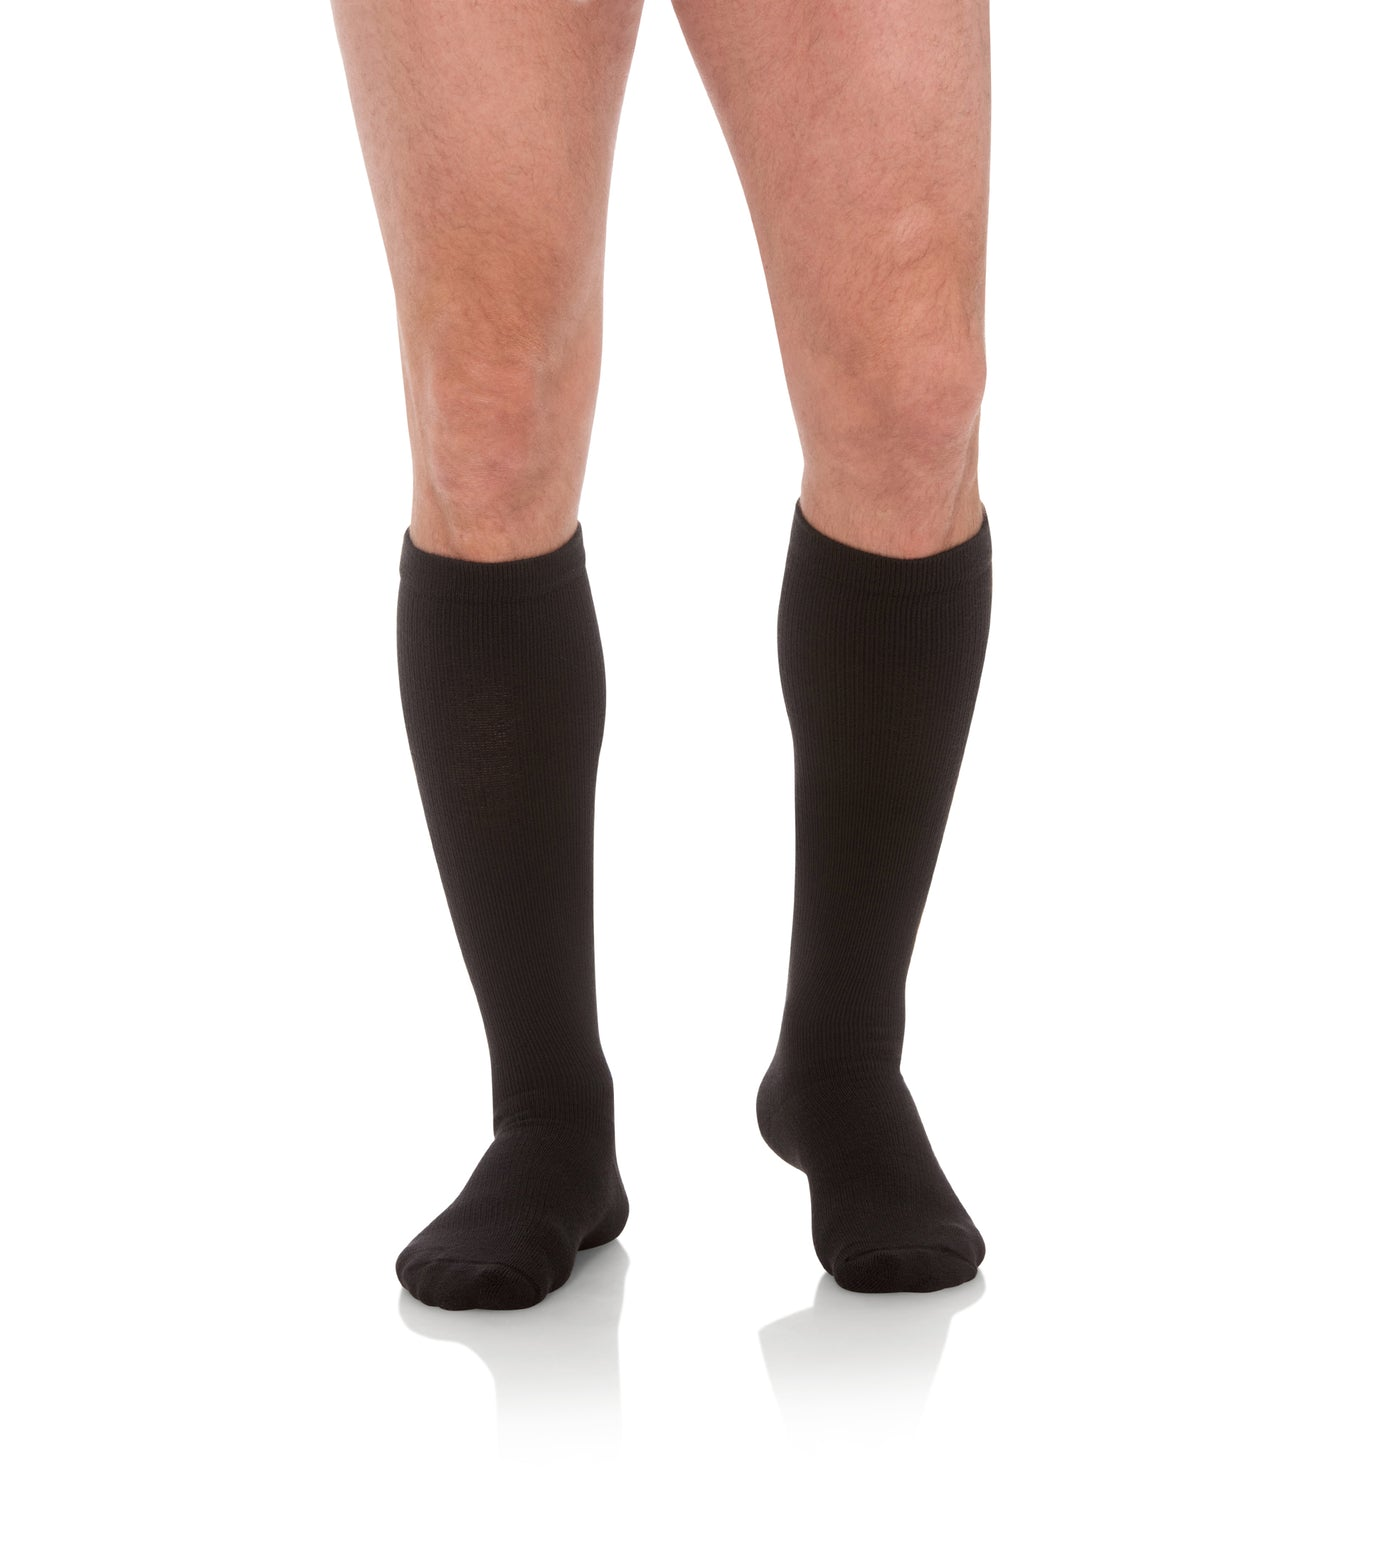 Mens Compression Socks 20-30 mmHg